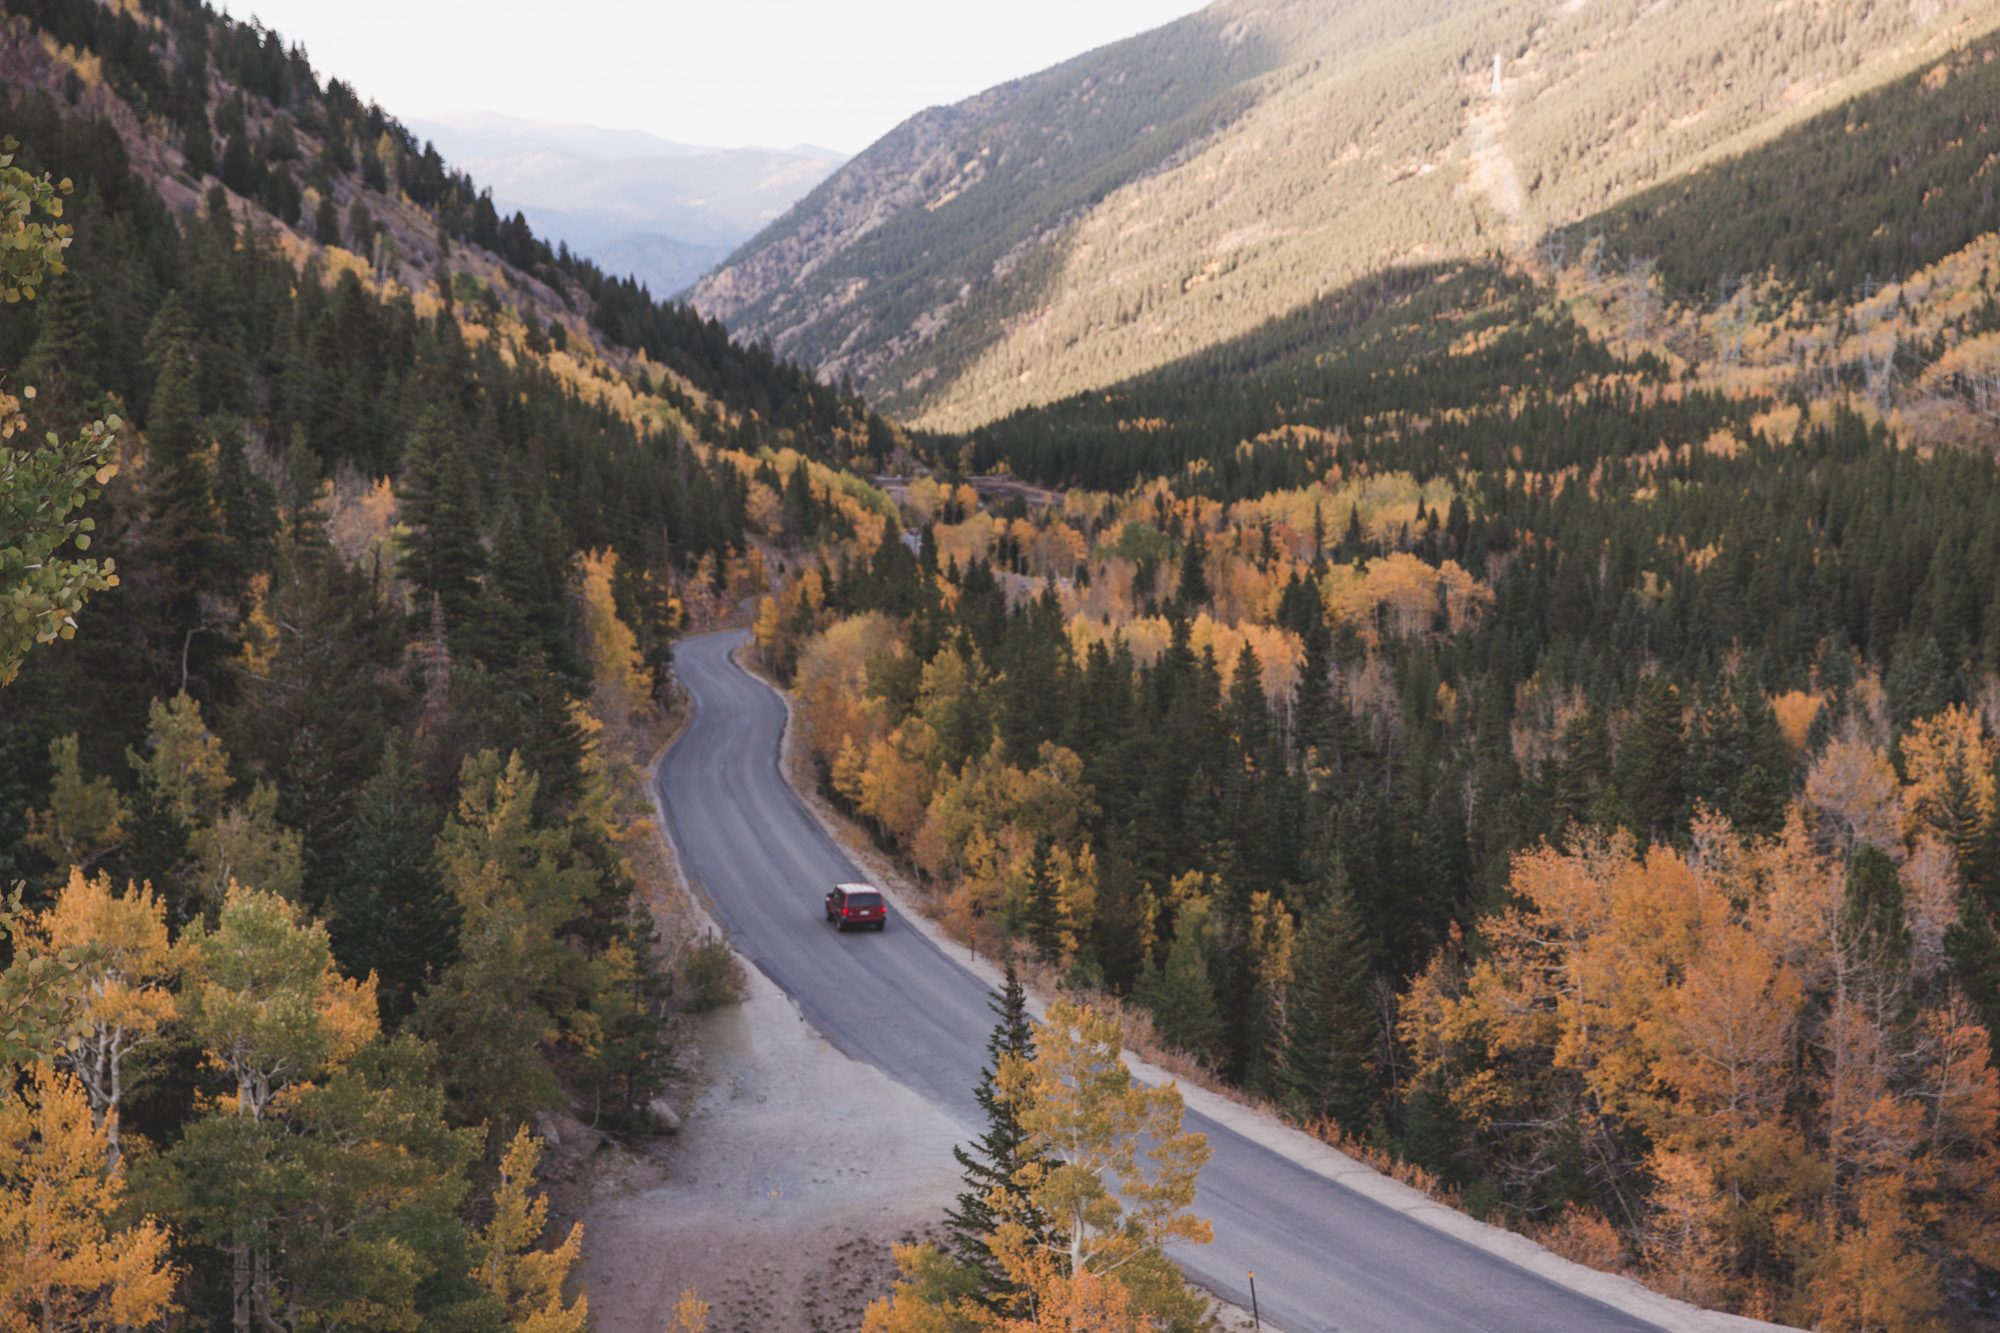 View of Guanella Pass Road in Colorado in fall, with a car on the road surrounded by green pine trees and yellow aspen trees